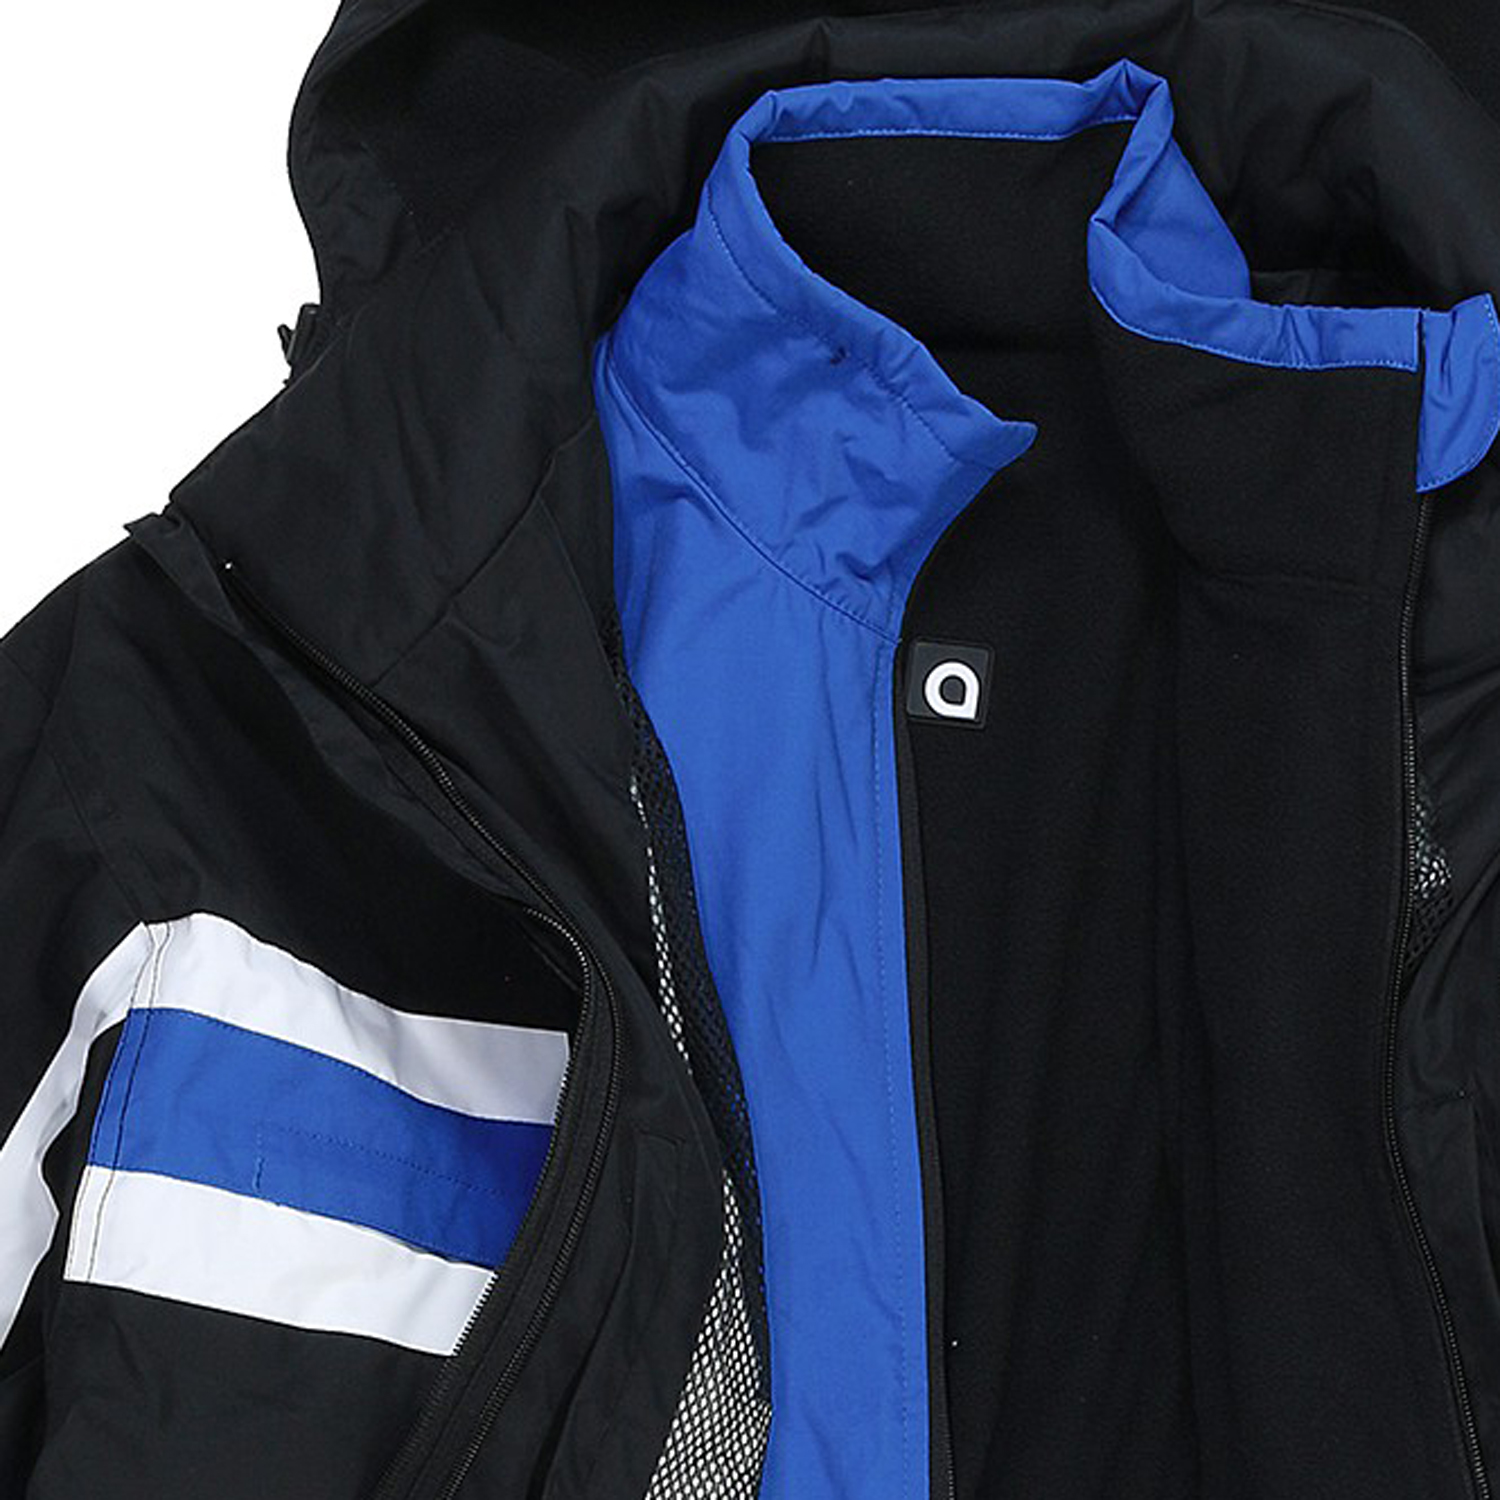 Detail Image to XXL Sports and ski  jacket in oversize by Aero